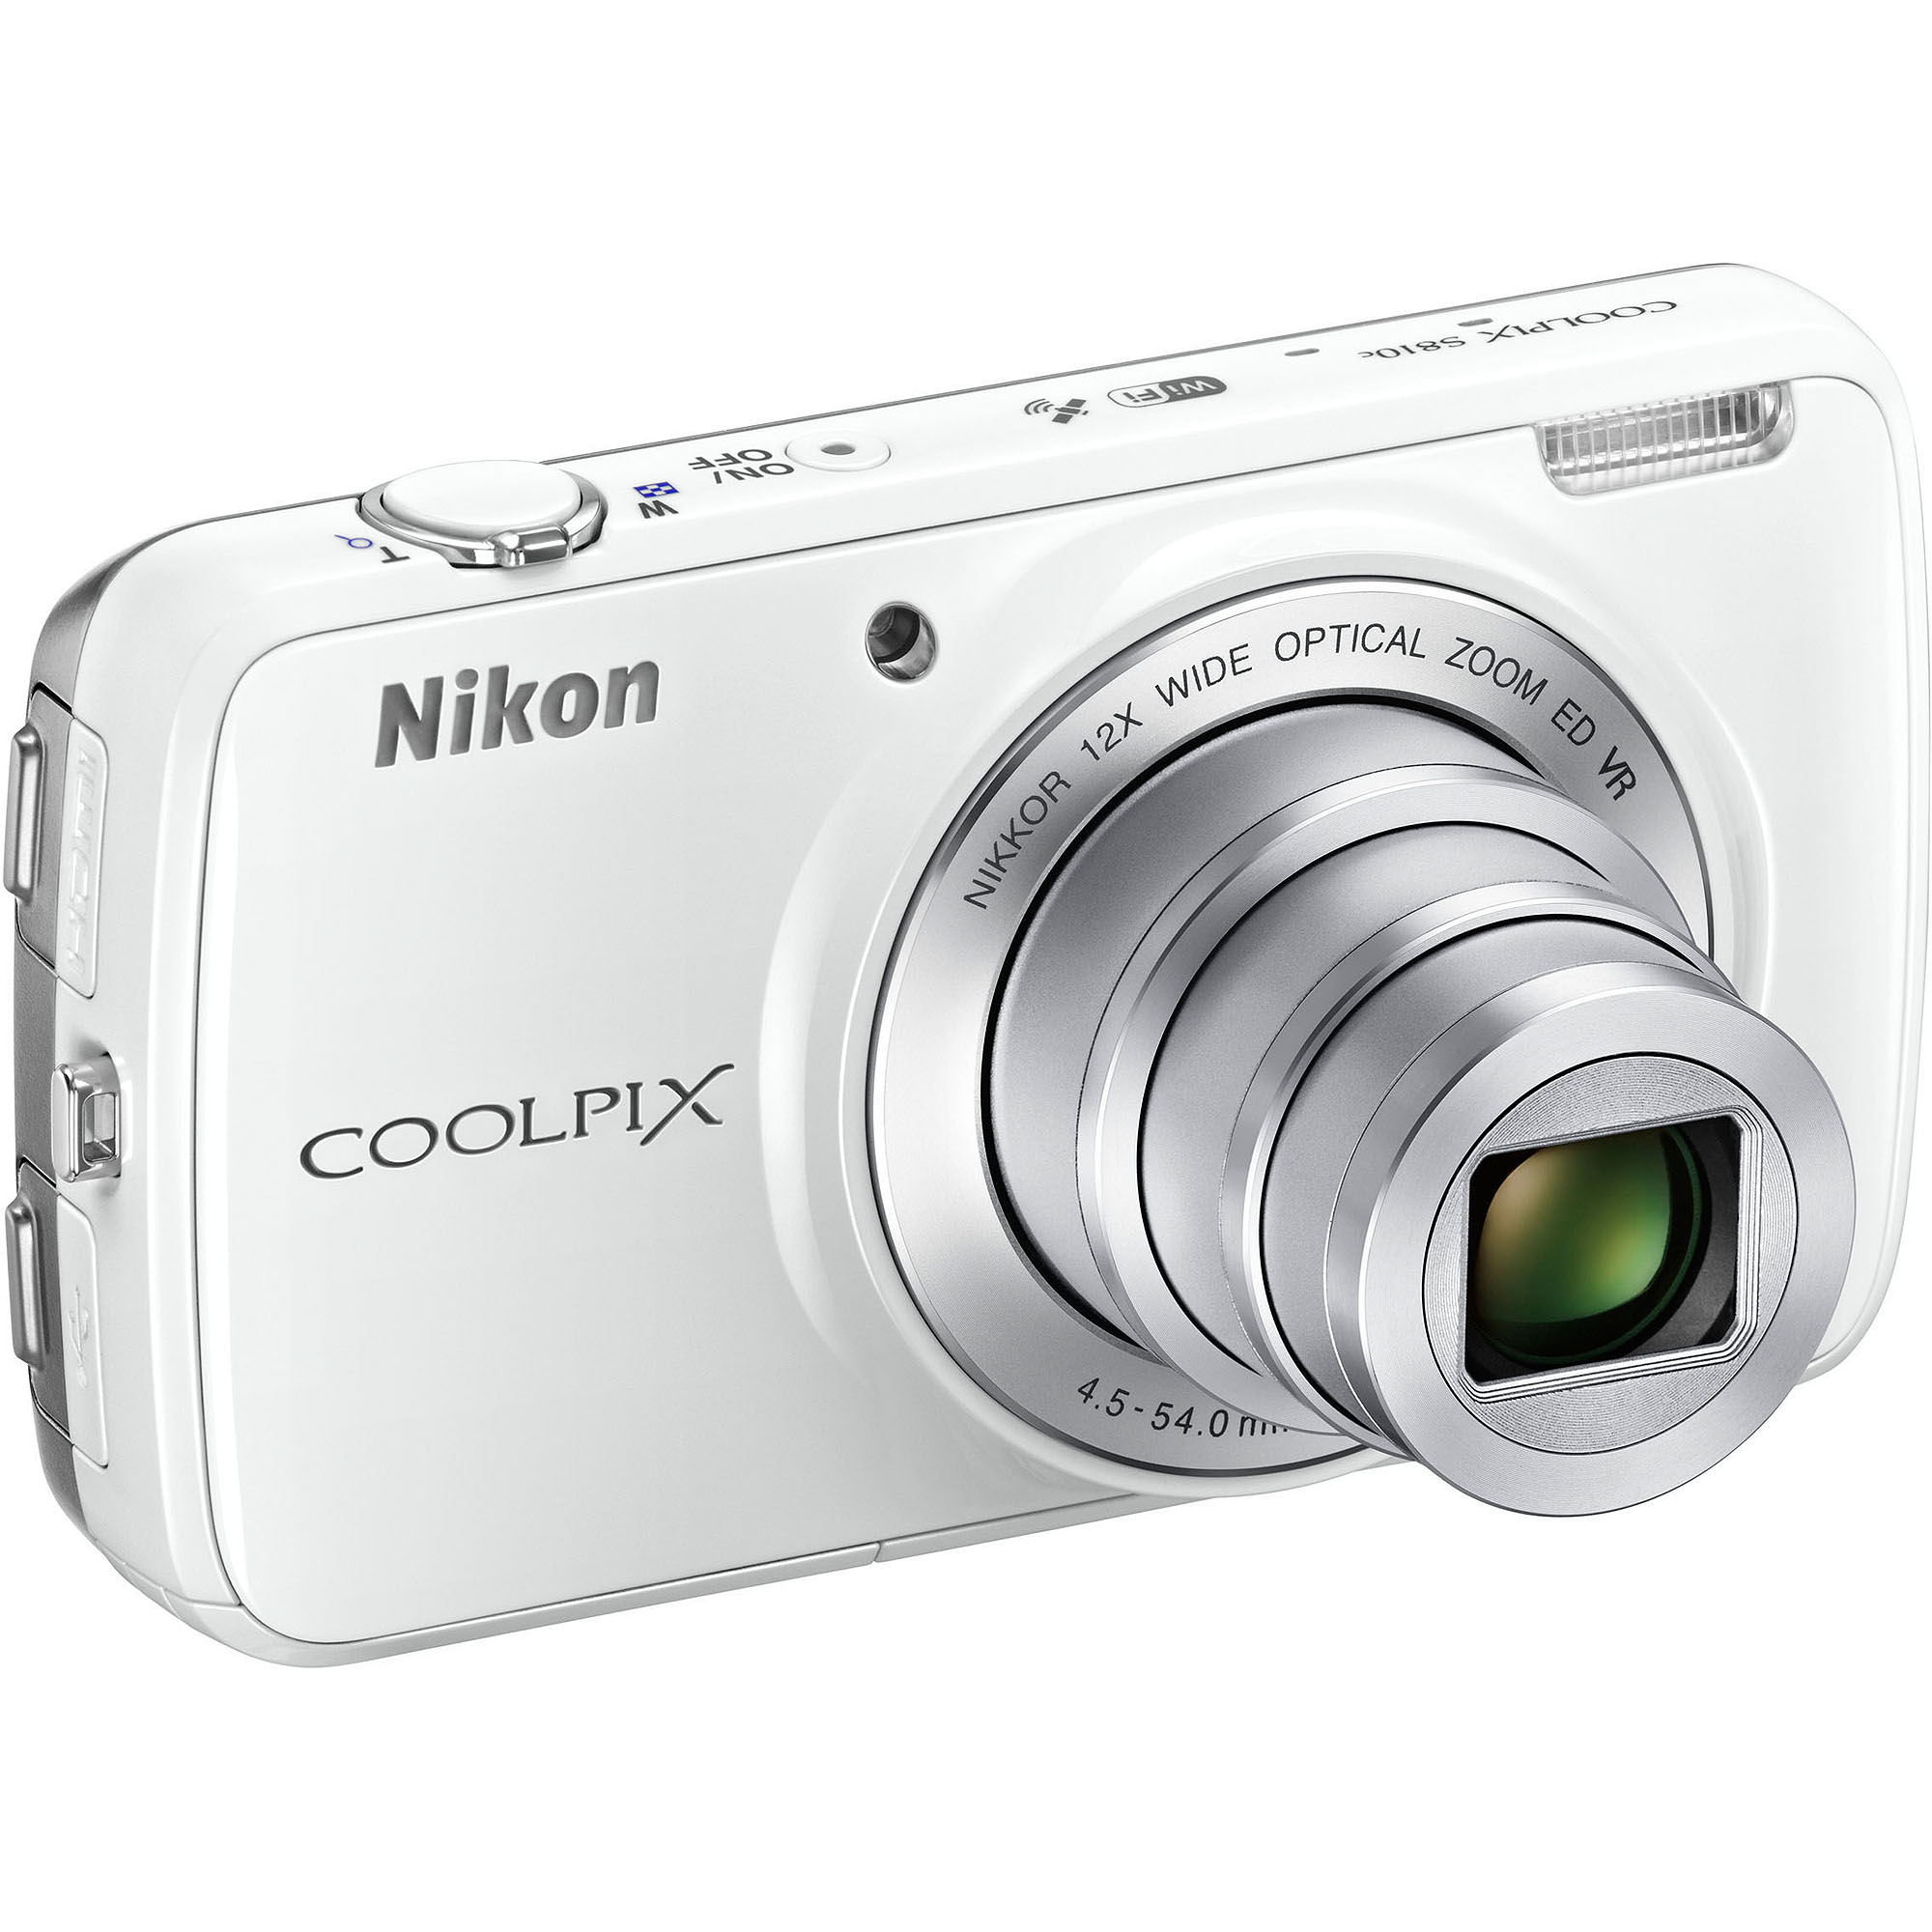 Nikon White COOLPIX S810C Digital Camera with 16 Megapixels and 12x Optical Zoom